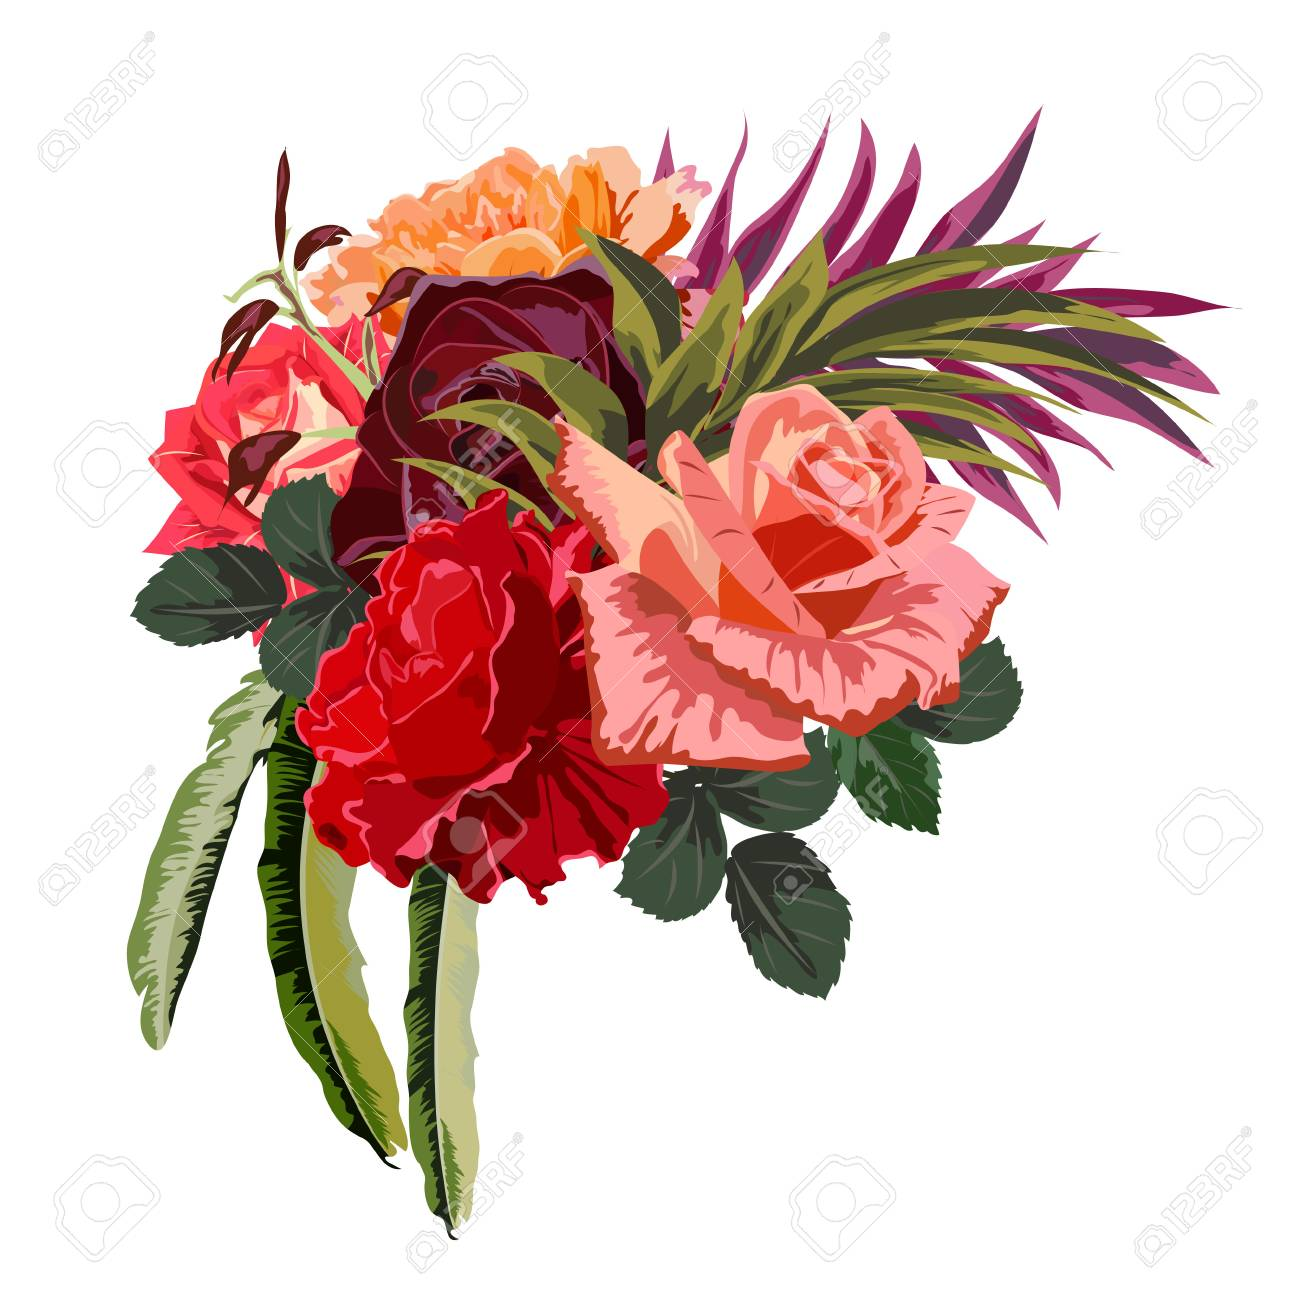 Bouquet Of Beautiful Roses Decor Elements For Greeting Cards Wedding Invitations Birthday And